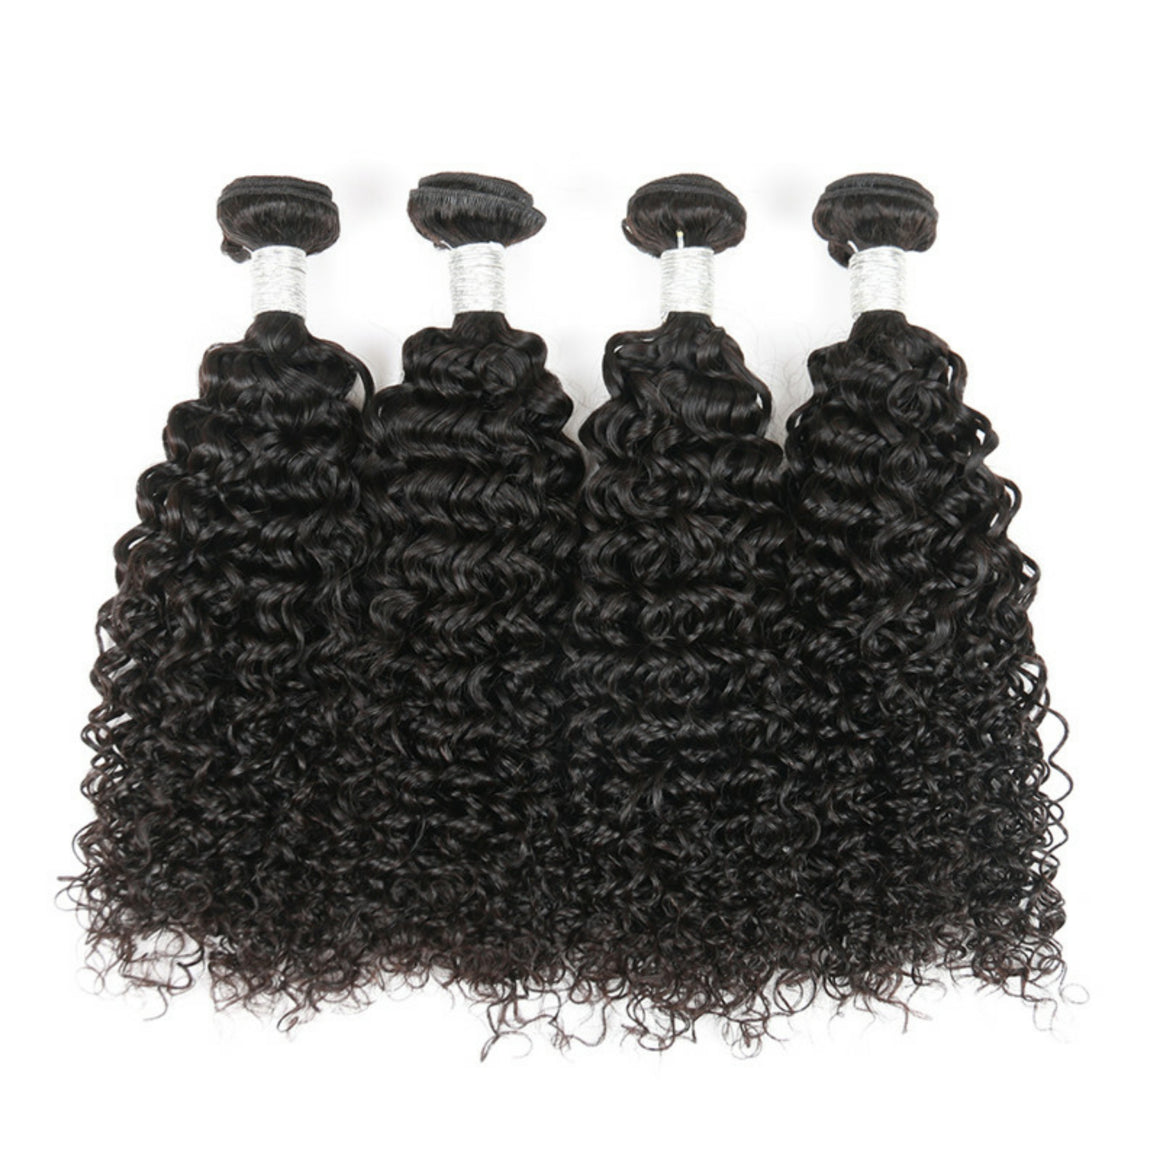 Four (4) Bundles of jerry Curly grade 10a - mslhair